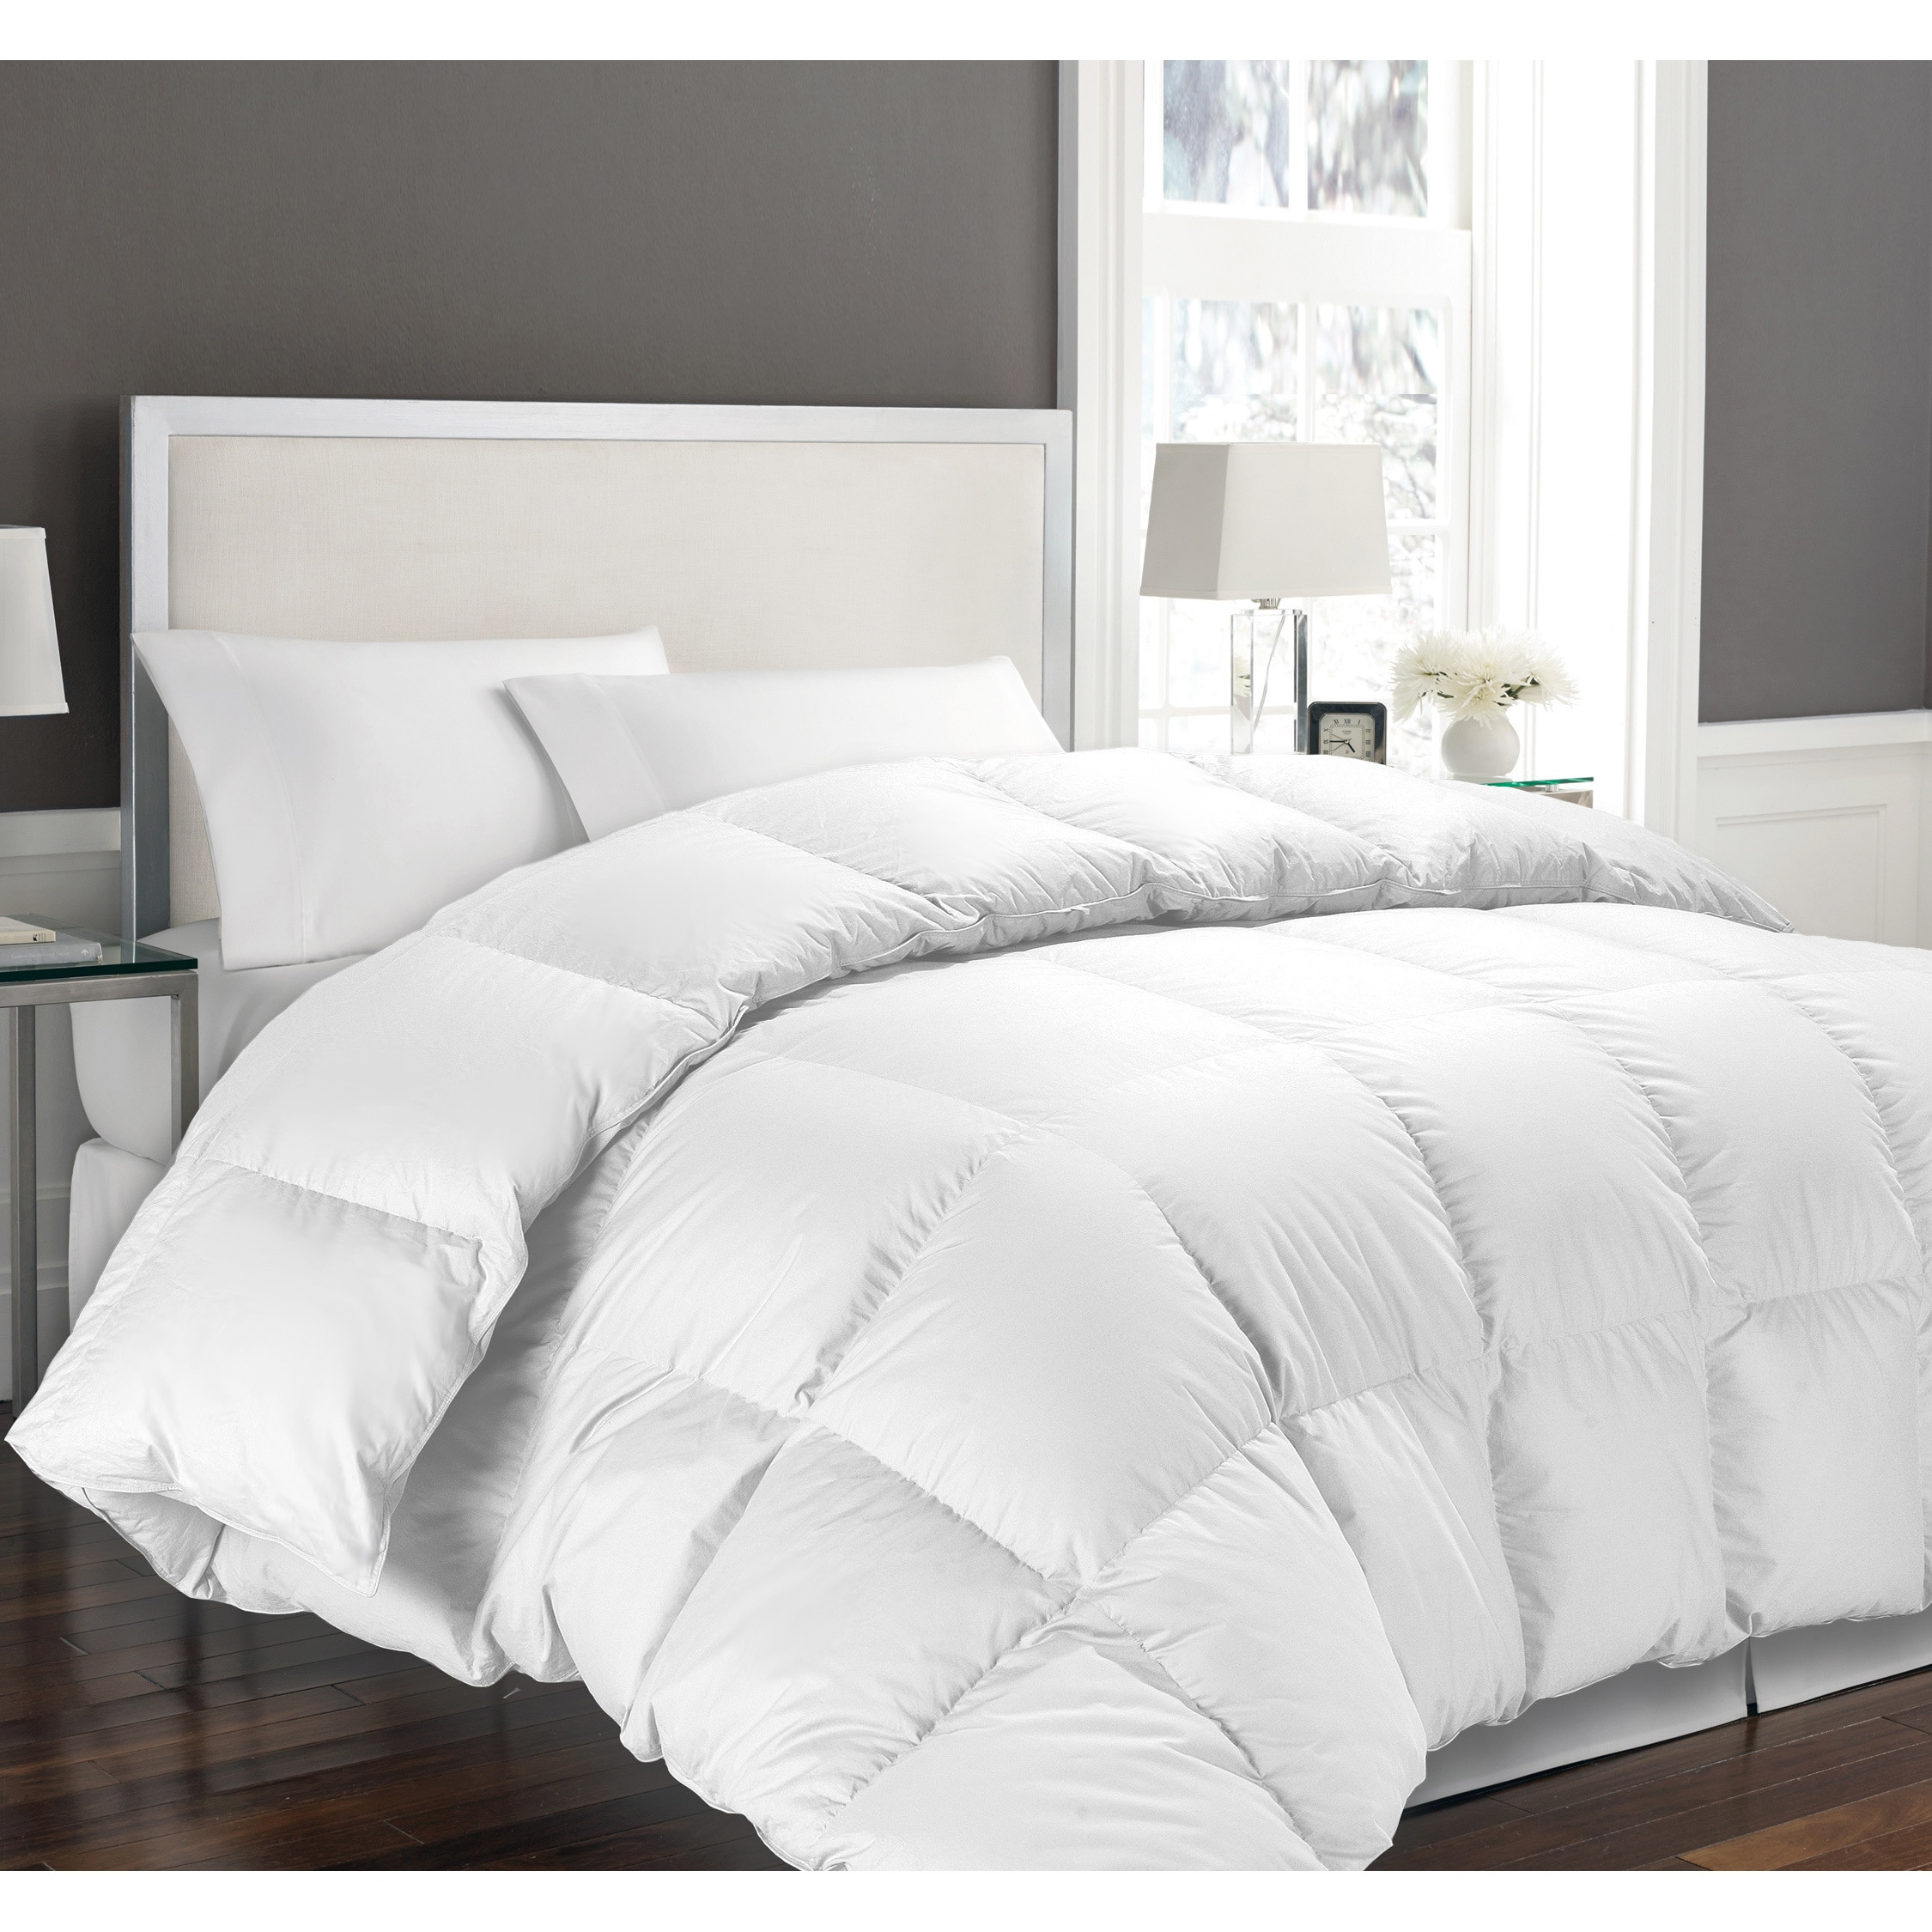 Shop hotel grand oversized luxury 1000 thread count egyptian cotton down alternative comforter on sale free shipping today overstock com 8237003